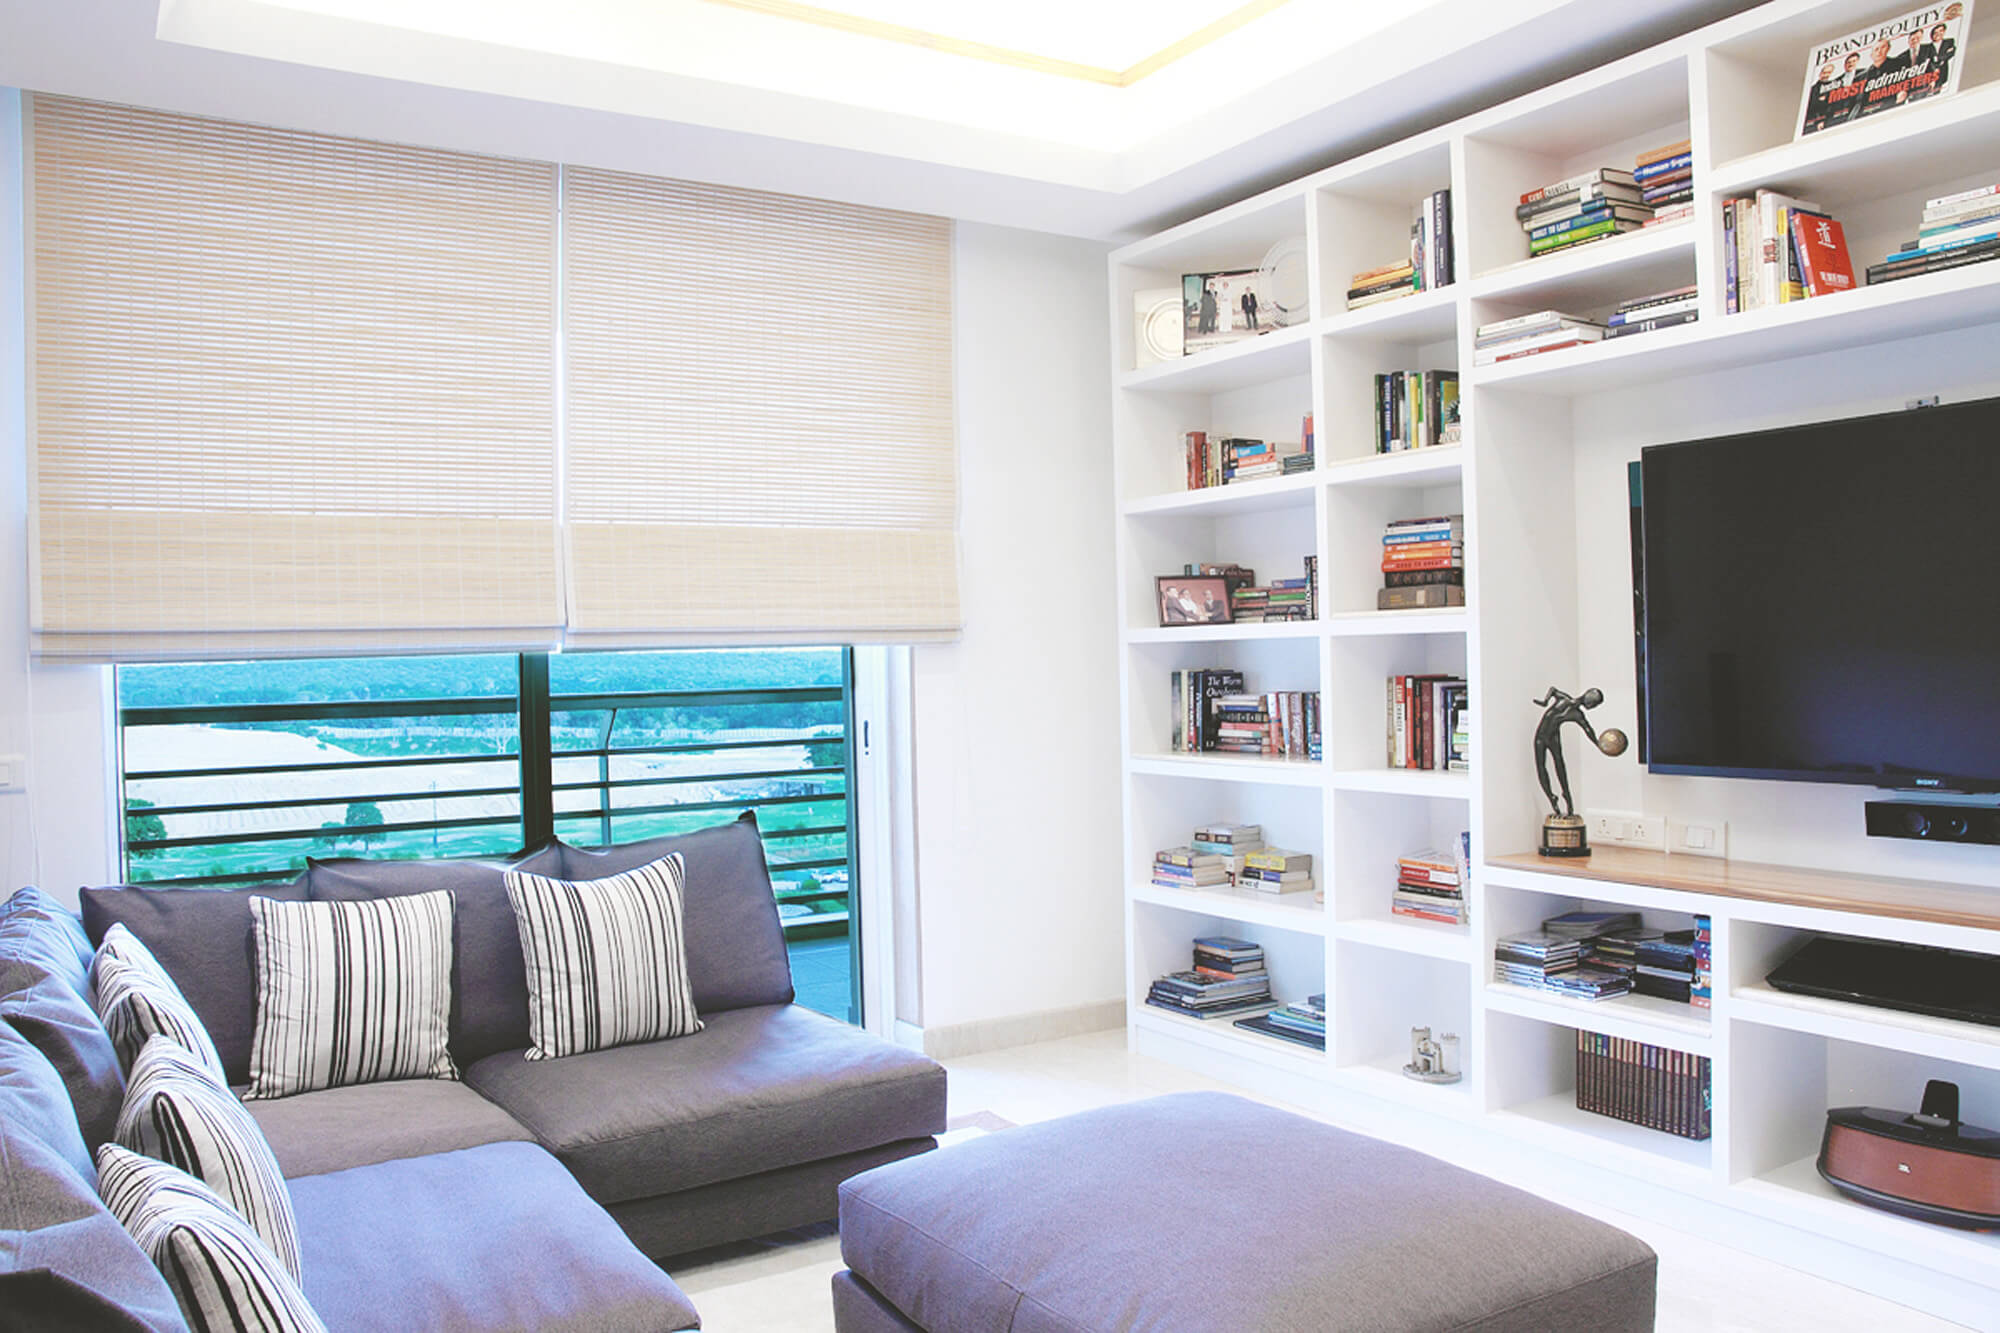 kohli residence, aralia apartment, gurgaon